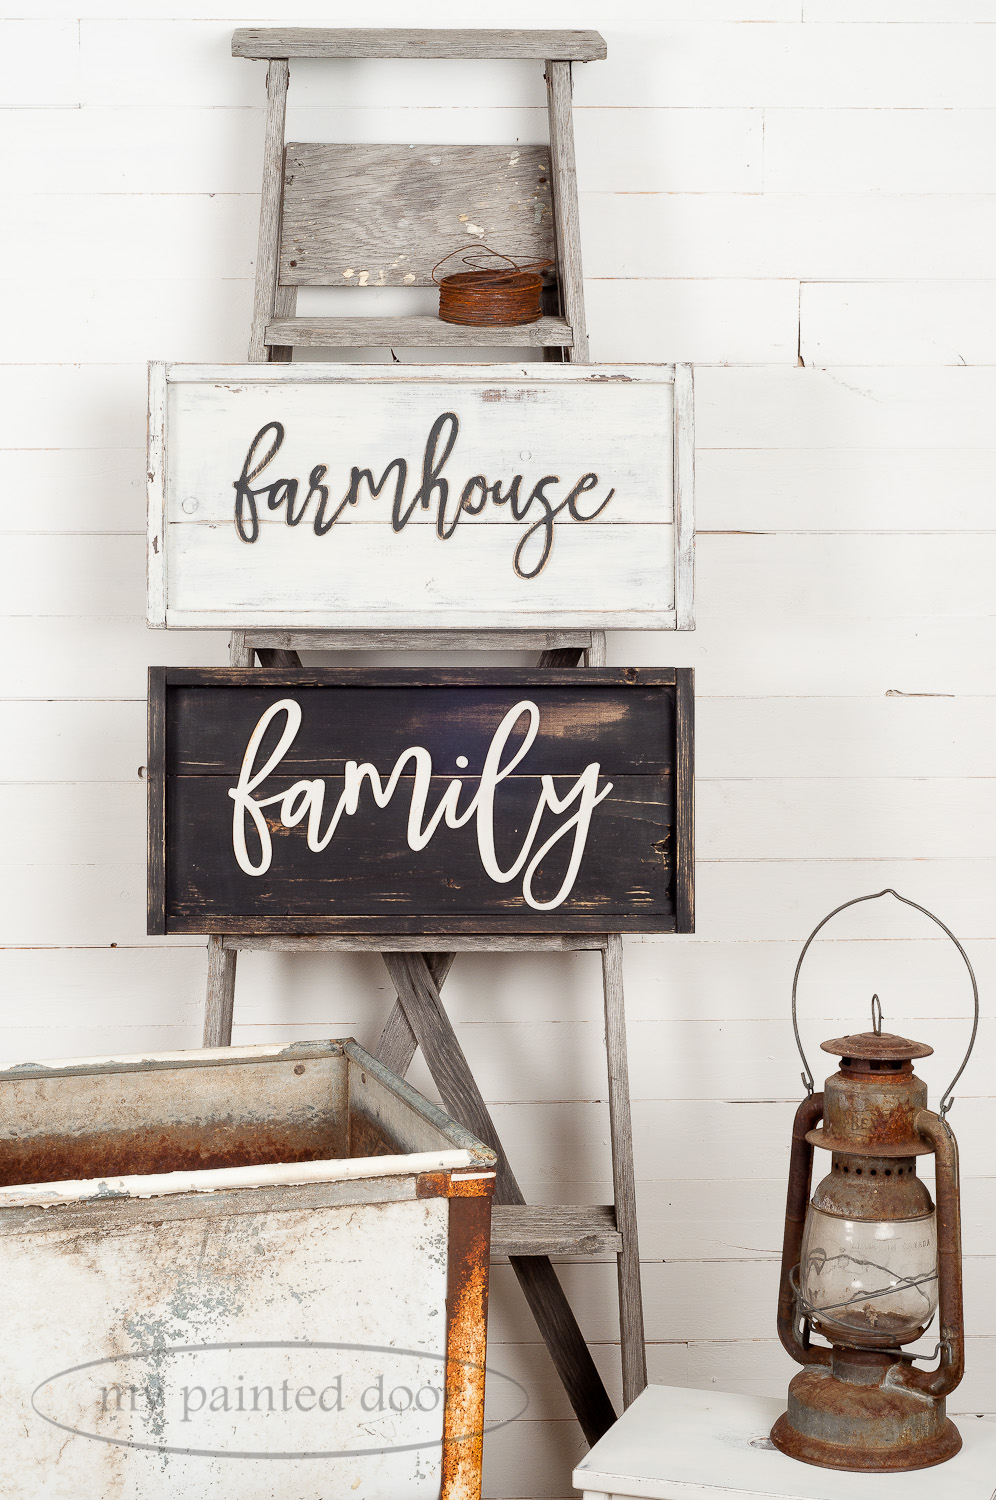 Farmhouse style sign workshops in Kakabeka Falls and Hurkett